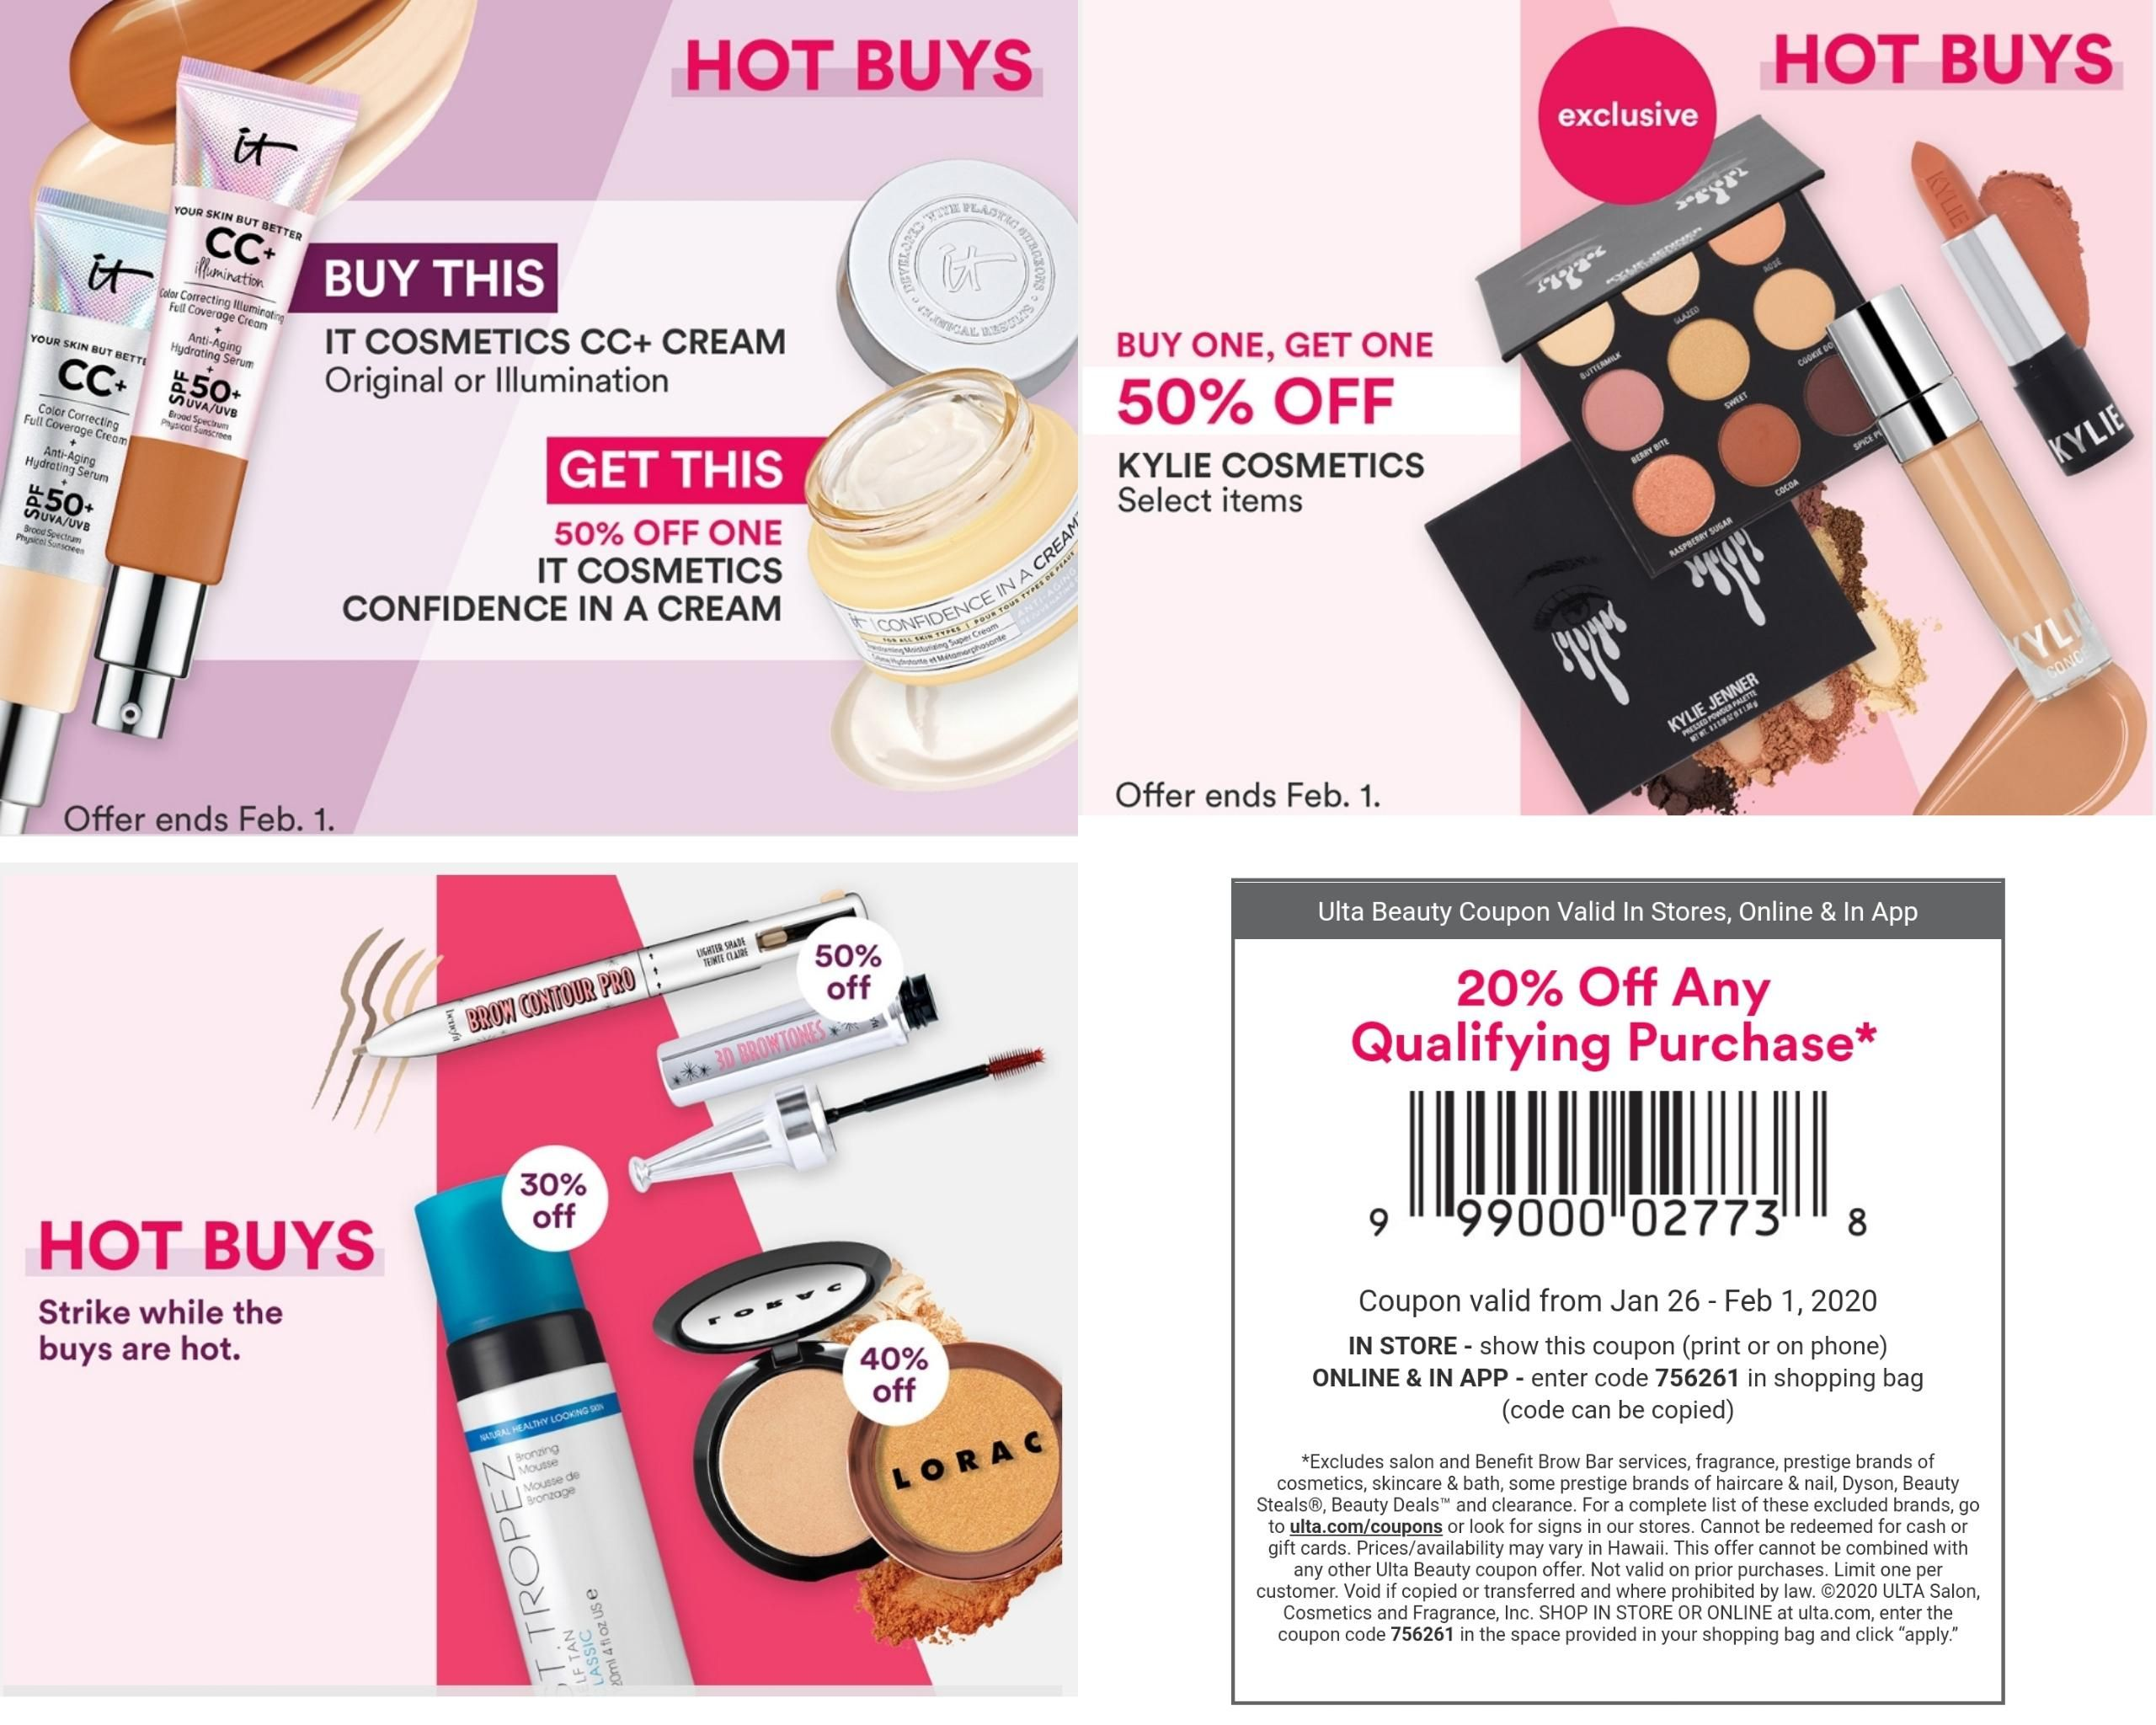 Ulta New Hot Buys And Universal 20 Off Non Prestige Coupon Muaonthecheap In 2020 Ulta Confidence In A Cream Stuff To Buy